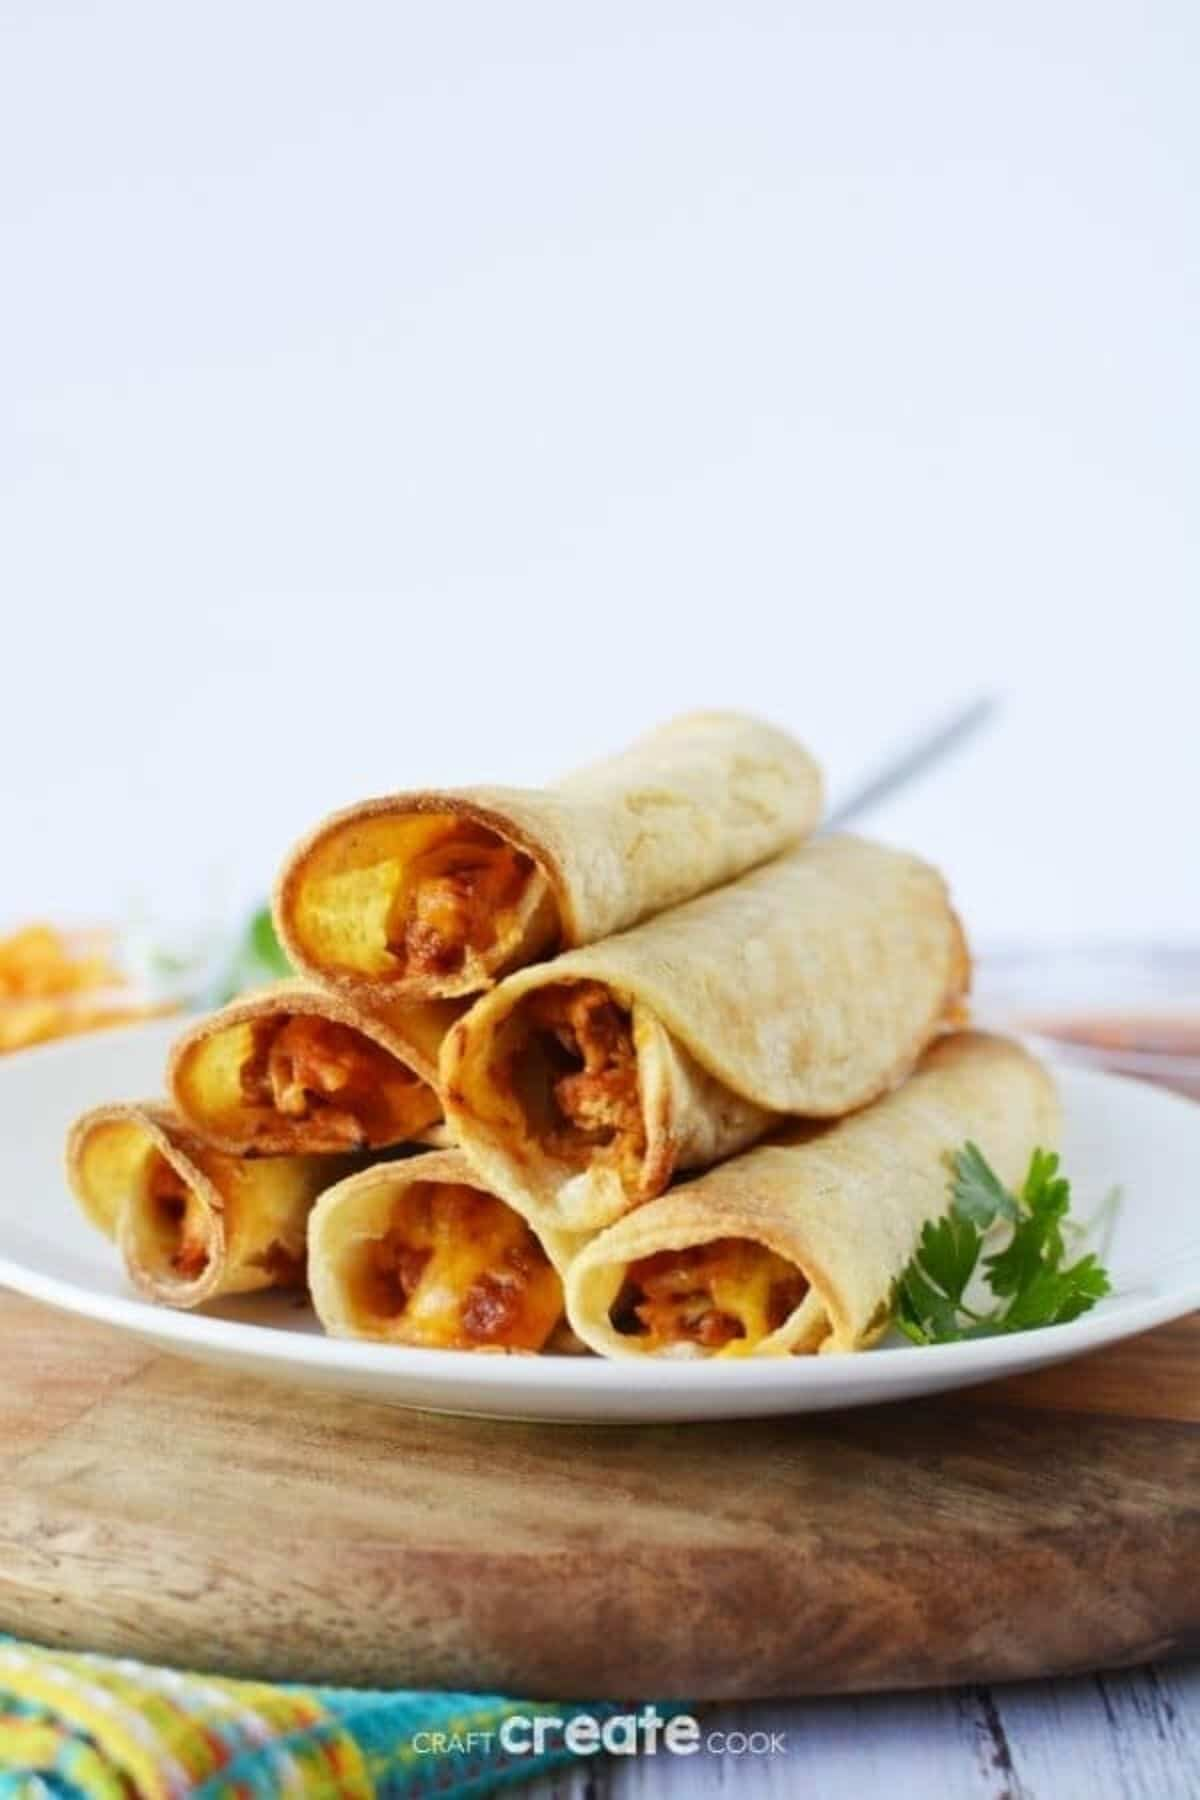 Taquitos on plate